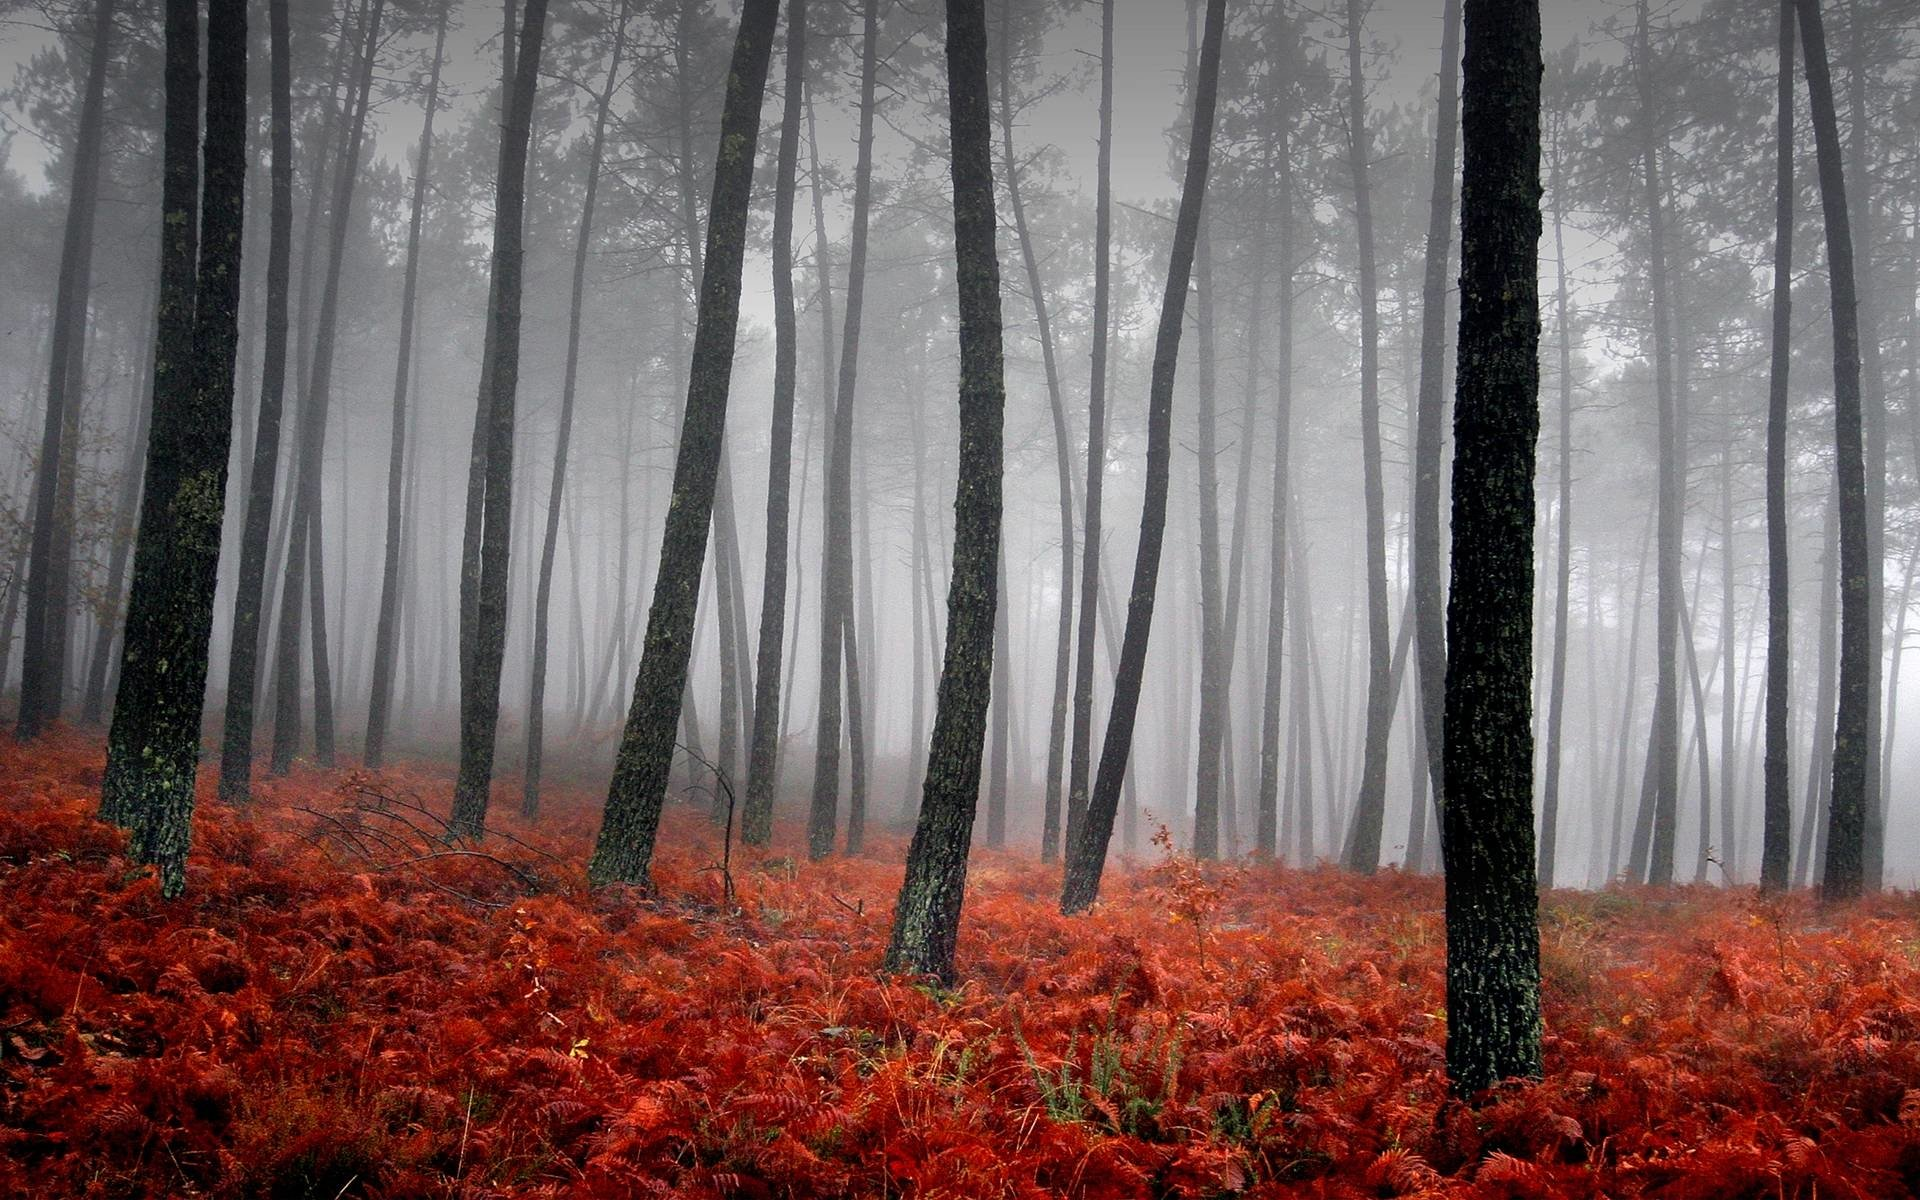 Fall Iphone Wallpaper Pinterest Forest Full Hd Wallpaper And Background Image 1920x1200